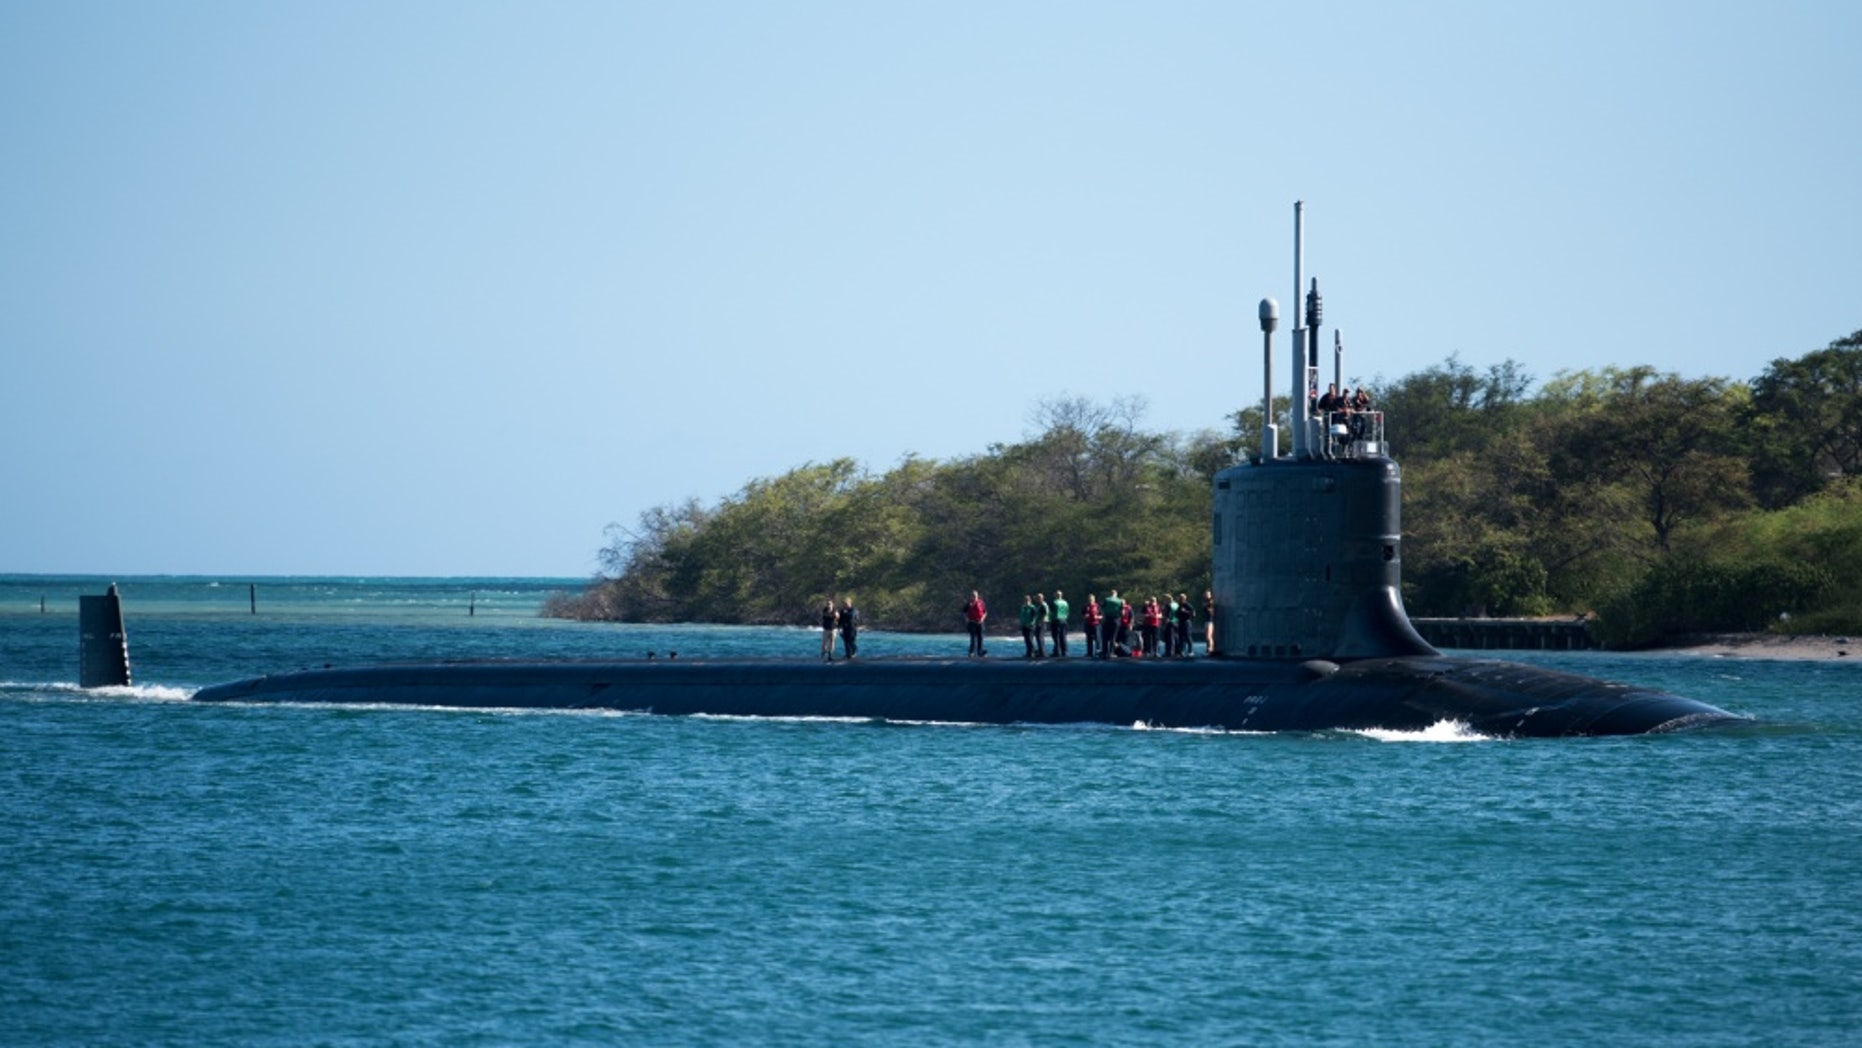 File photo - The Virginia-class fast attack submarine USS Hawaii (SSN 776) pulls into Pearl Harbor July 6 as part of the biannual Rim of the Pacific (RIMPAC) 2018 maritime exercise.  (U.S. Navy photo by Mass Communications Specialist 1st Class Daniel Hinton/Released)